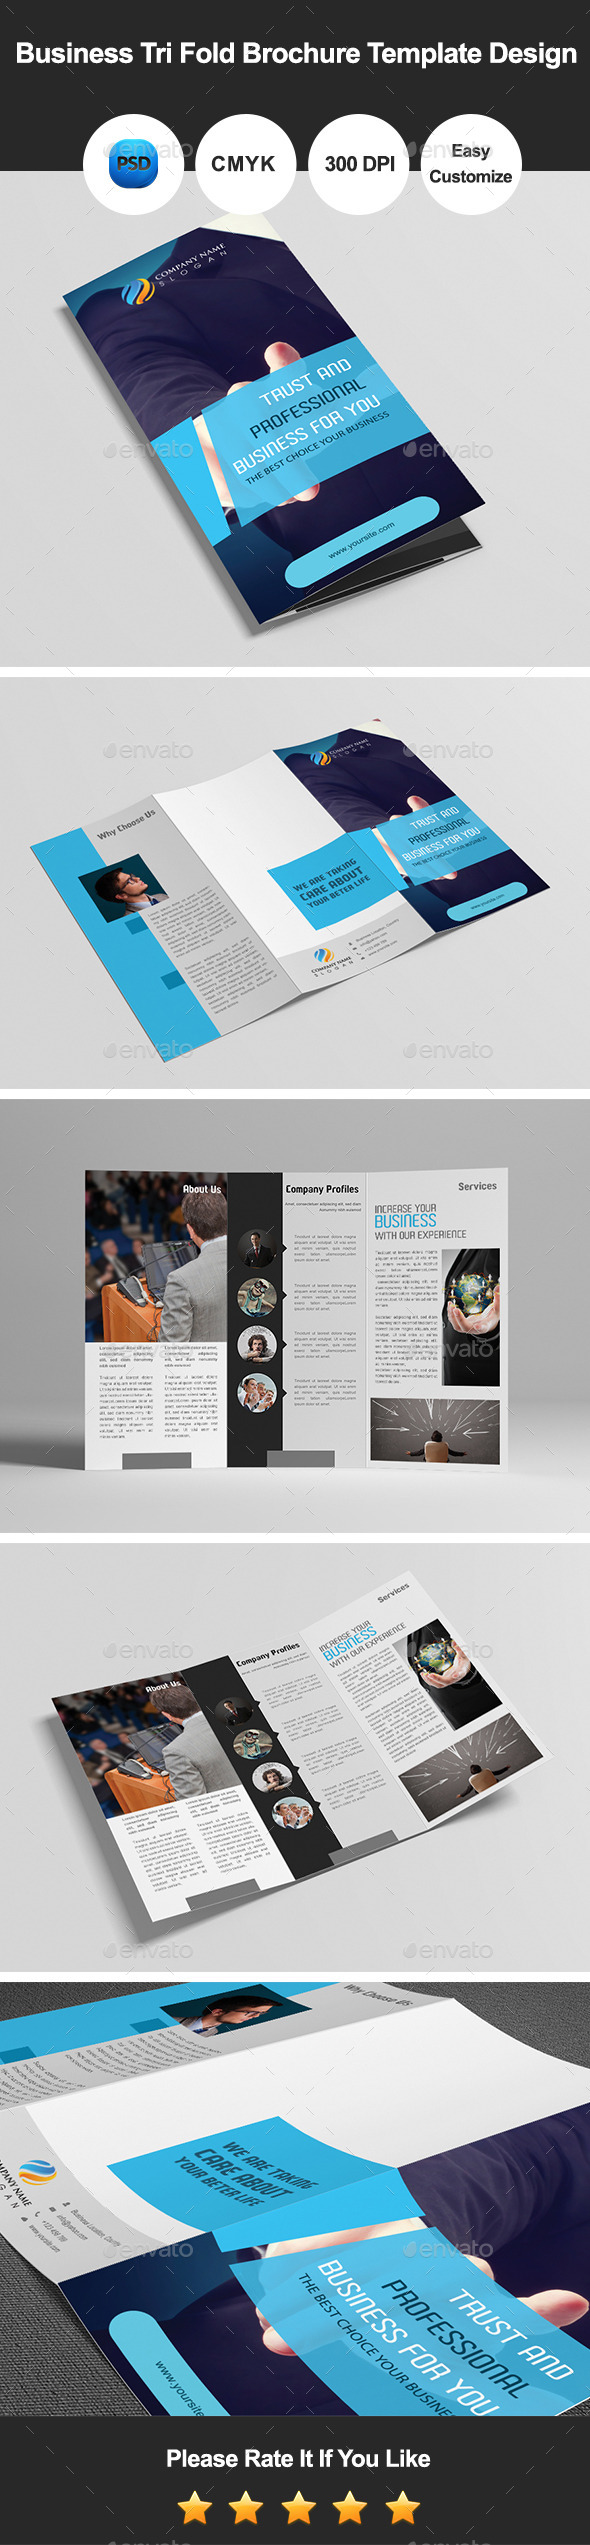 Business Tri Fold Brochure Template Design - Corporate Brochures